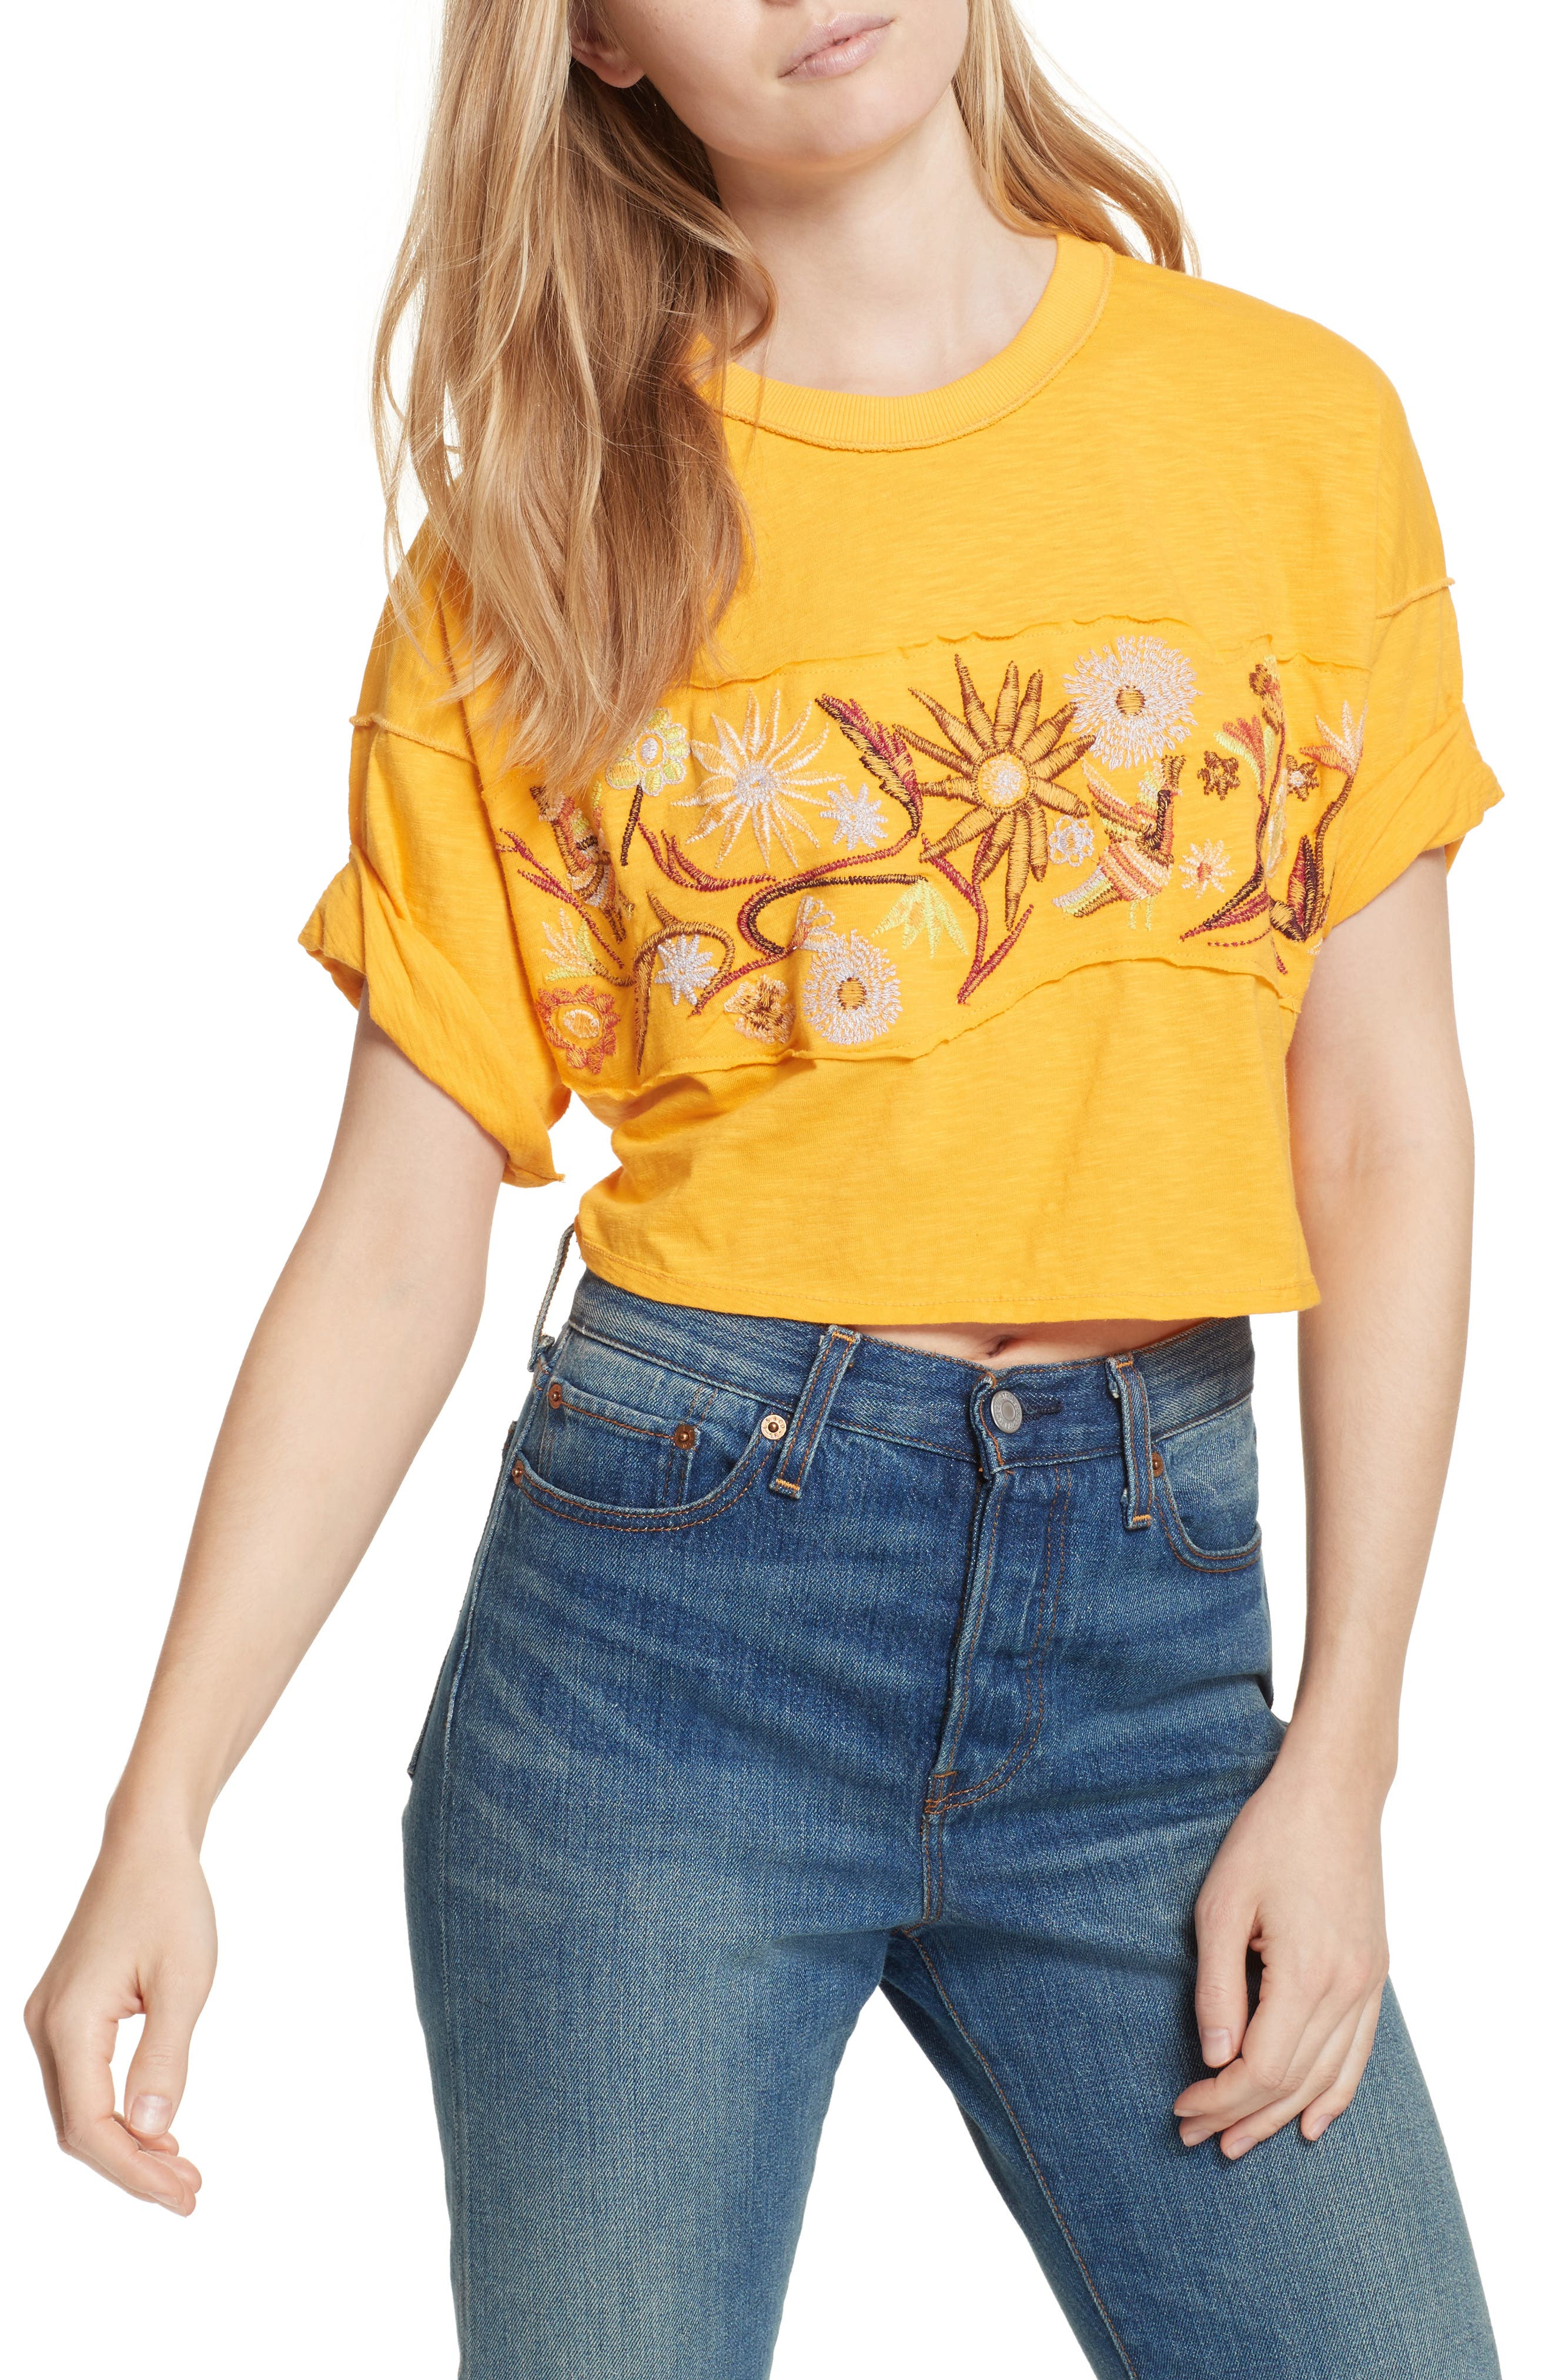 Garden Time Embroidered Tee,                             Main thumbnail 1, color,                             700